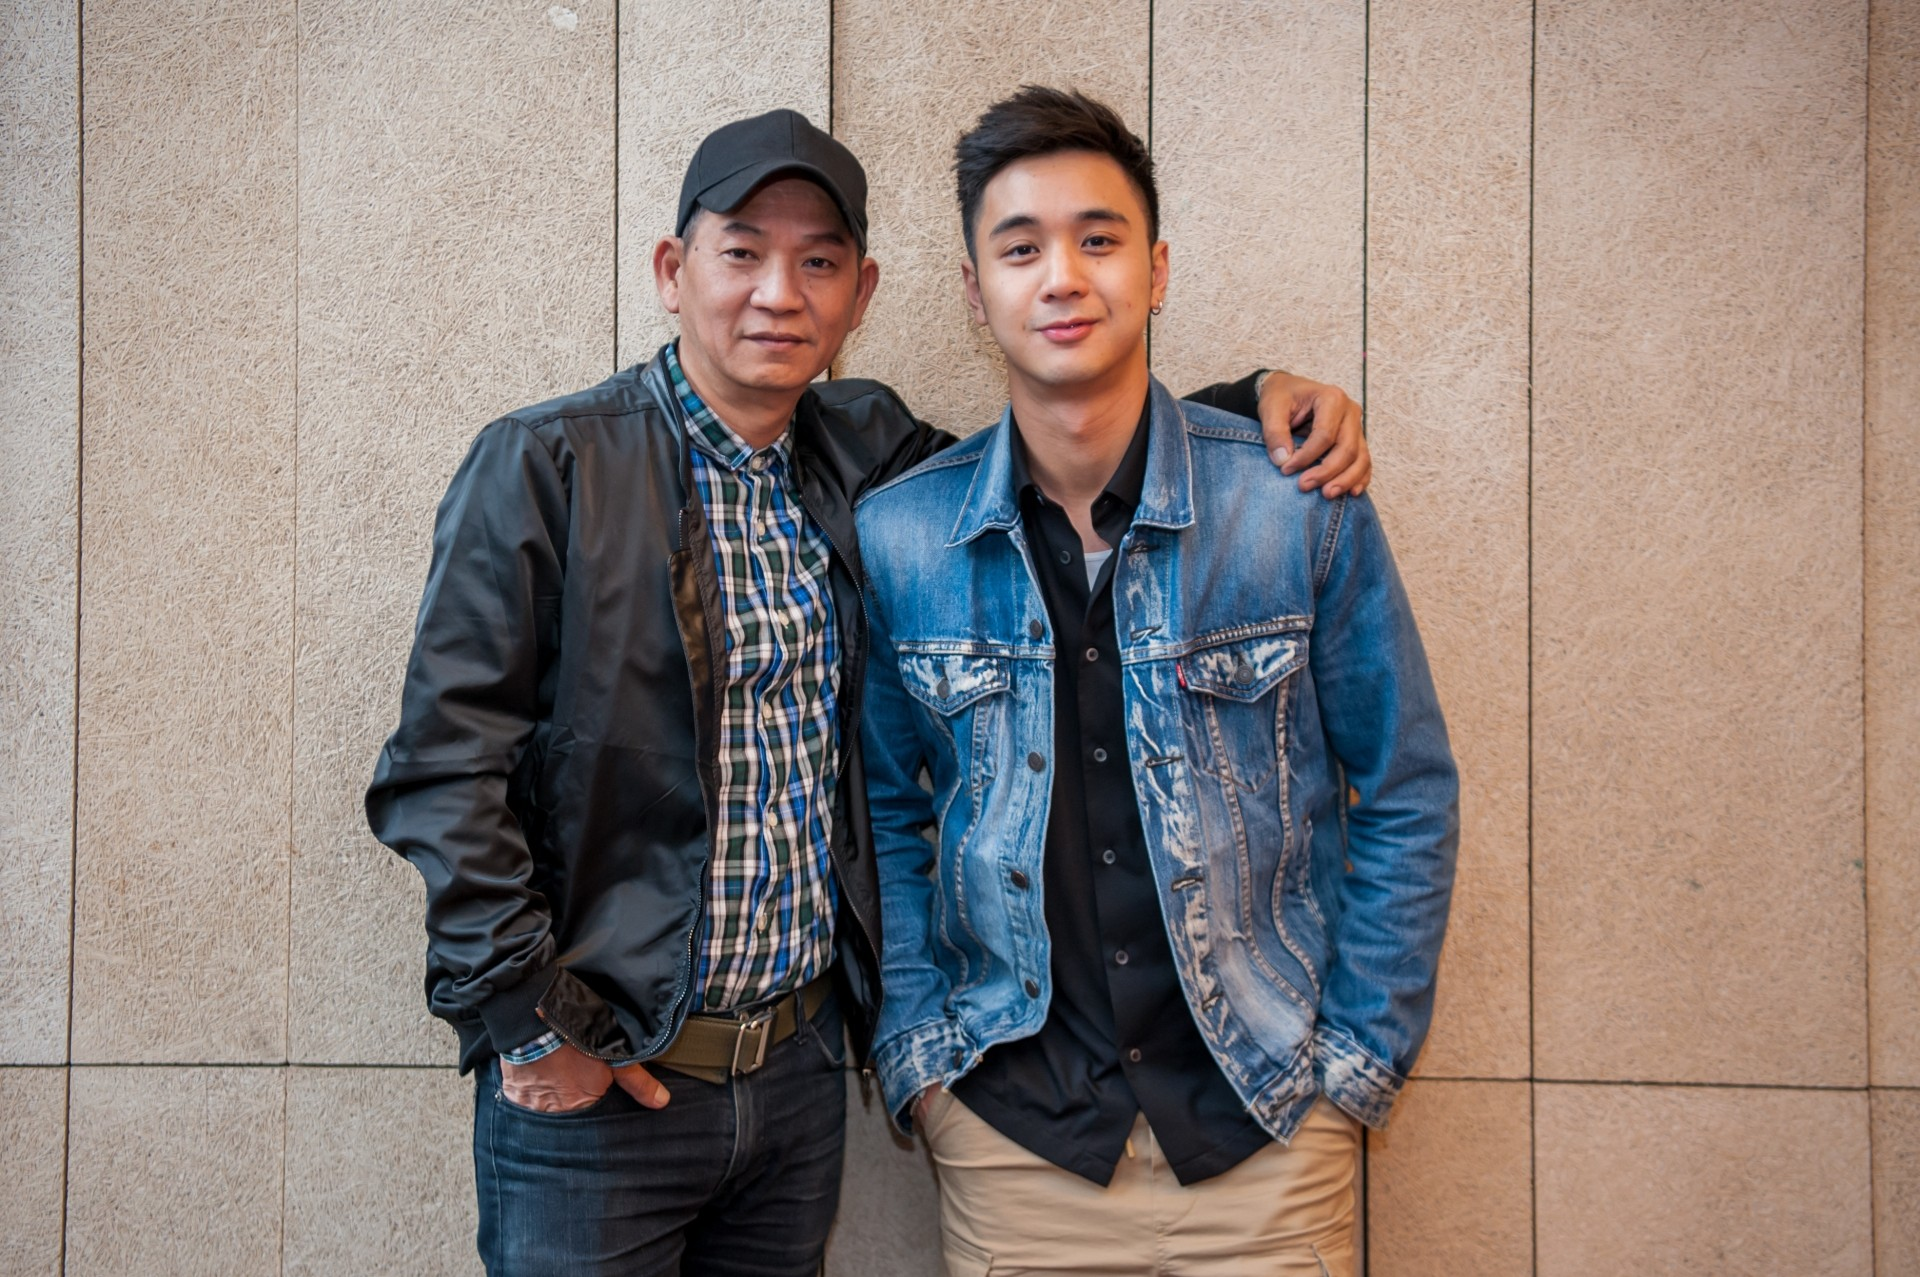 Wilson Tin (left) and Fabian Loo are proud to be part of 'Food Lore' as it carries an important message.